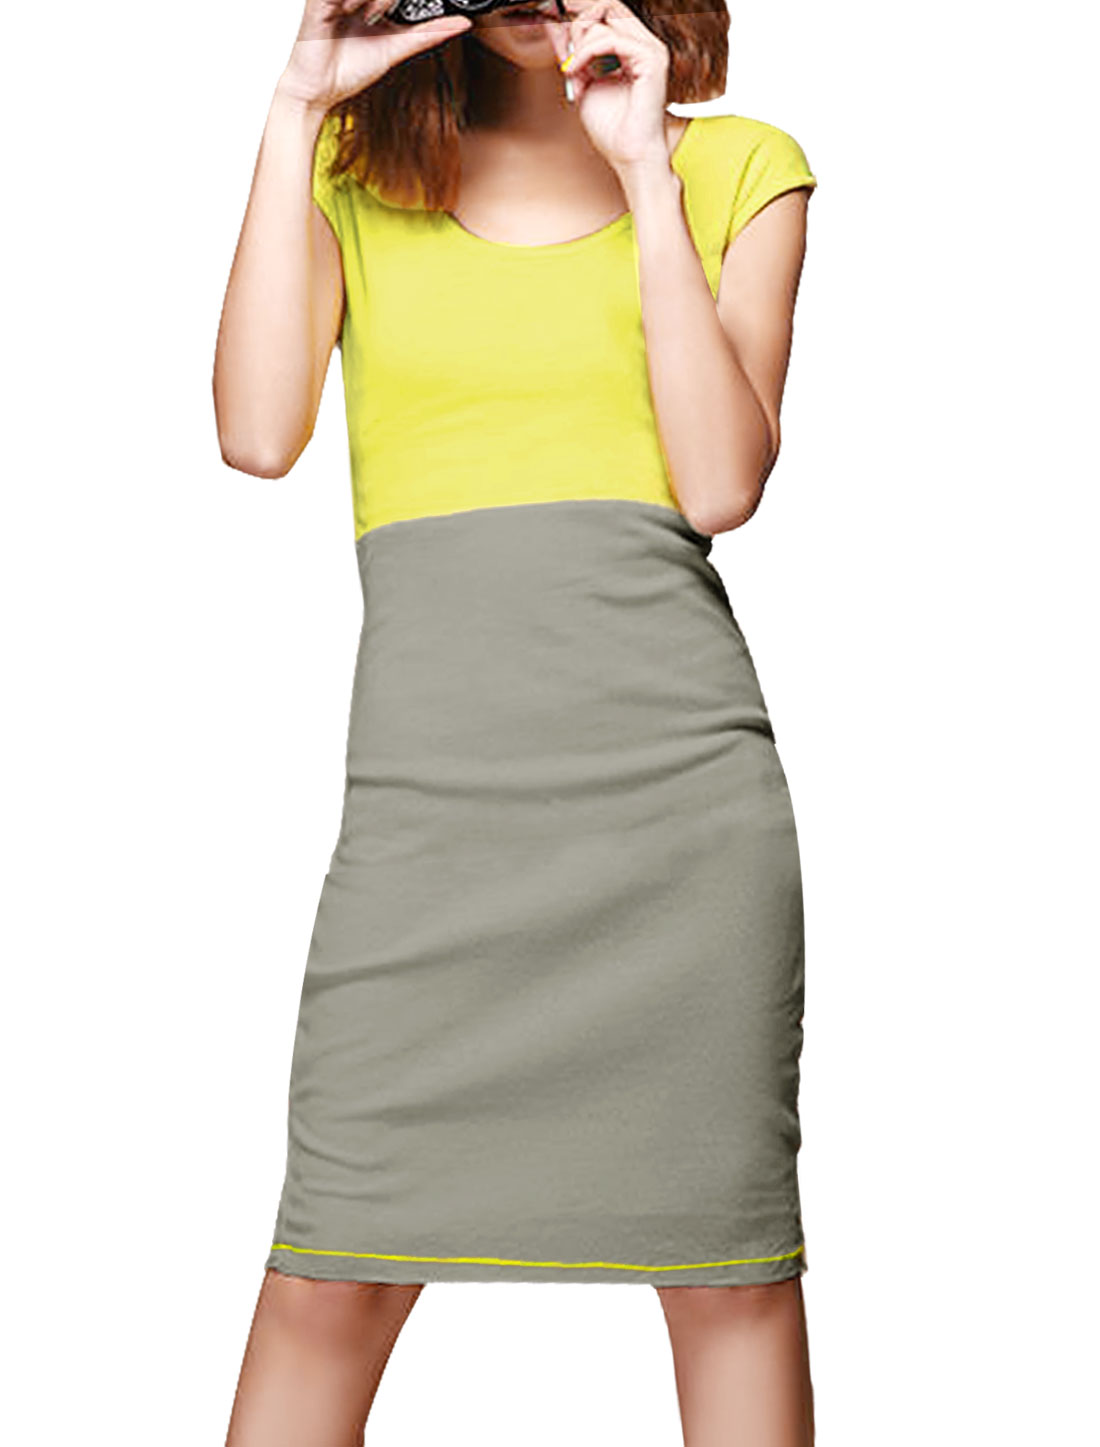 Women Light Gray Yellow Stretchy Slim Fit Knee-Length Sheath Dress XL